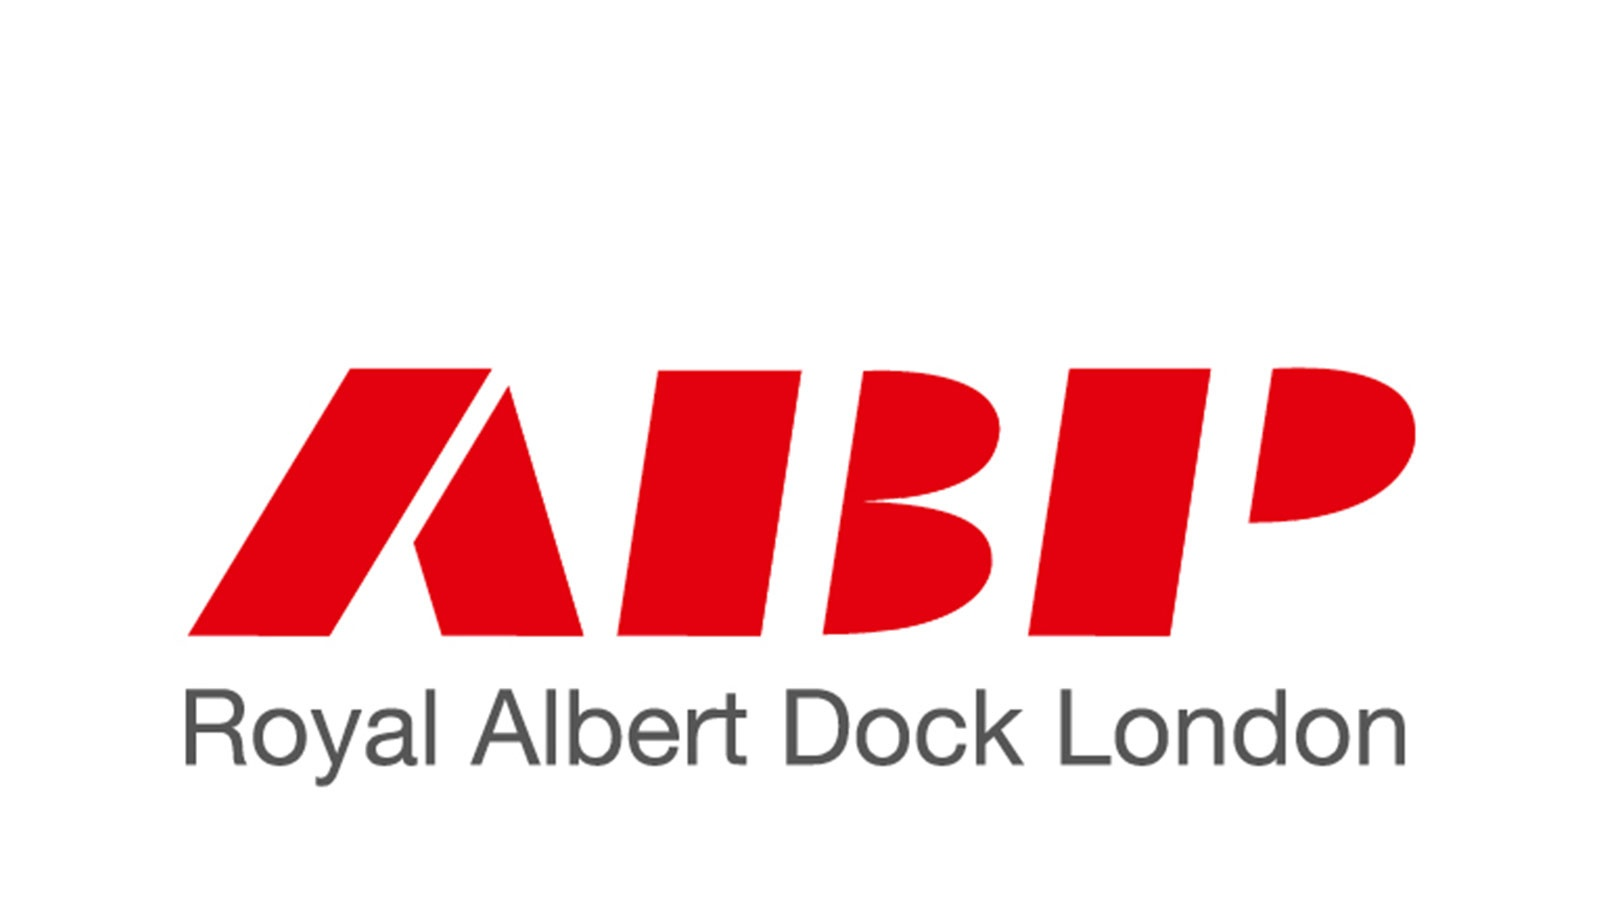 ABP have selected Asite's award winning cloud platform for their landmark project at Royal Albert Dock in London.